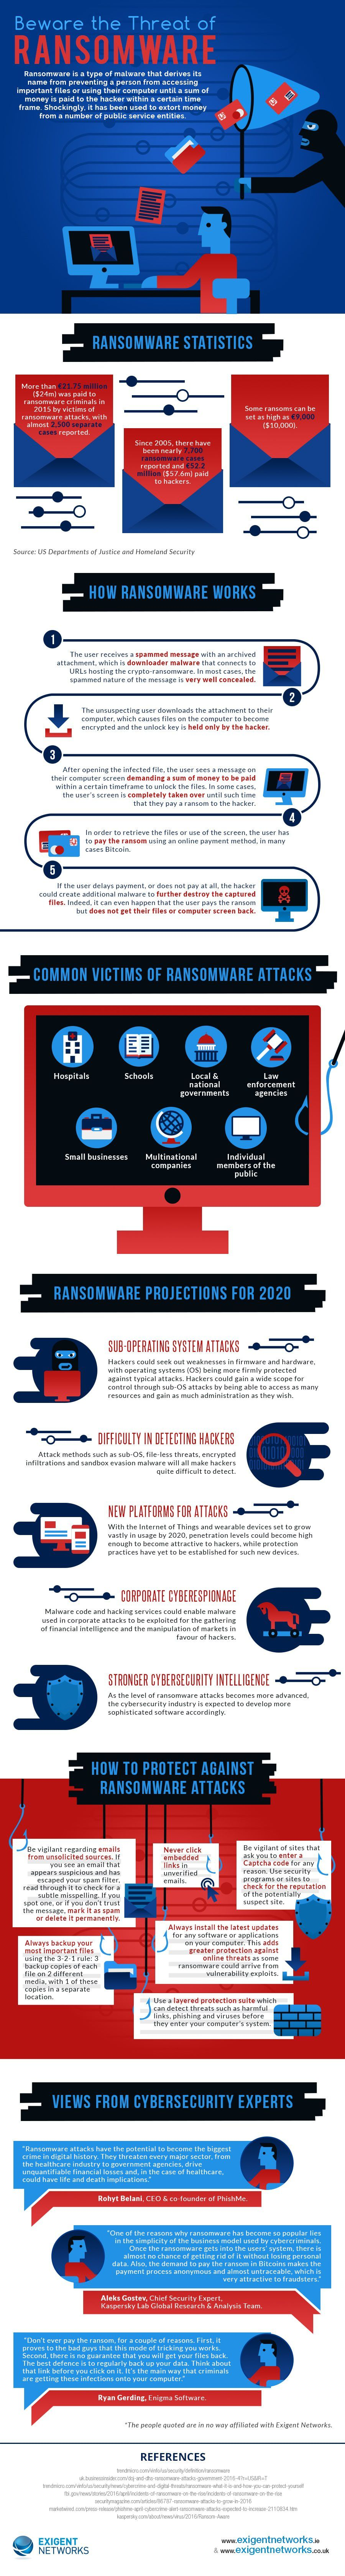 The Threat Of Ransomware Omg Infographic Threat Cyber Security